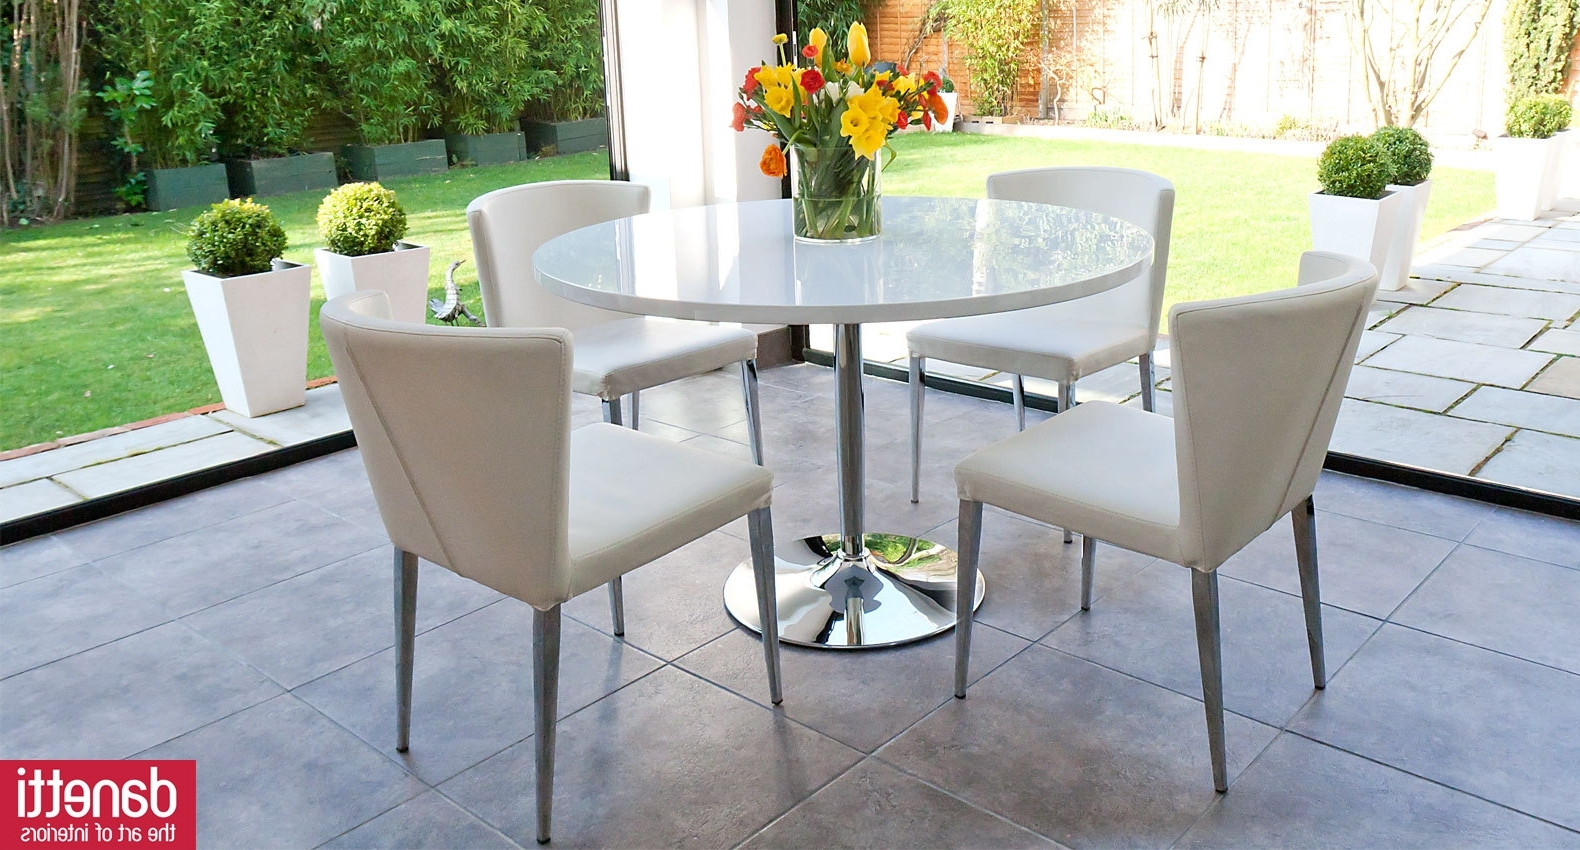 Simple White Round Dining Table 4 Legs Glass With Leather Acrylic Intended For Popular White Circular Dining Tables (View 17 of 25)